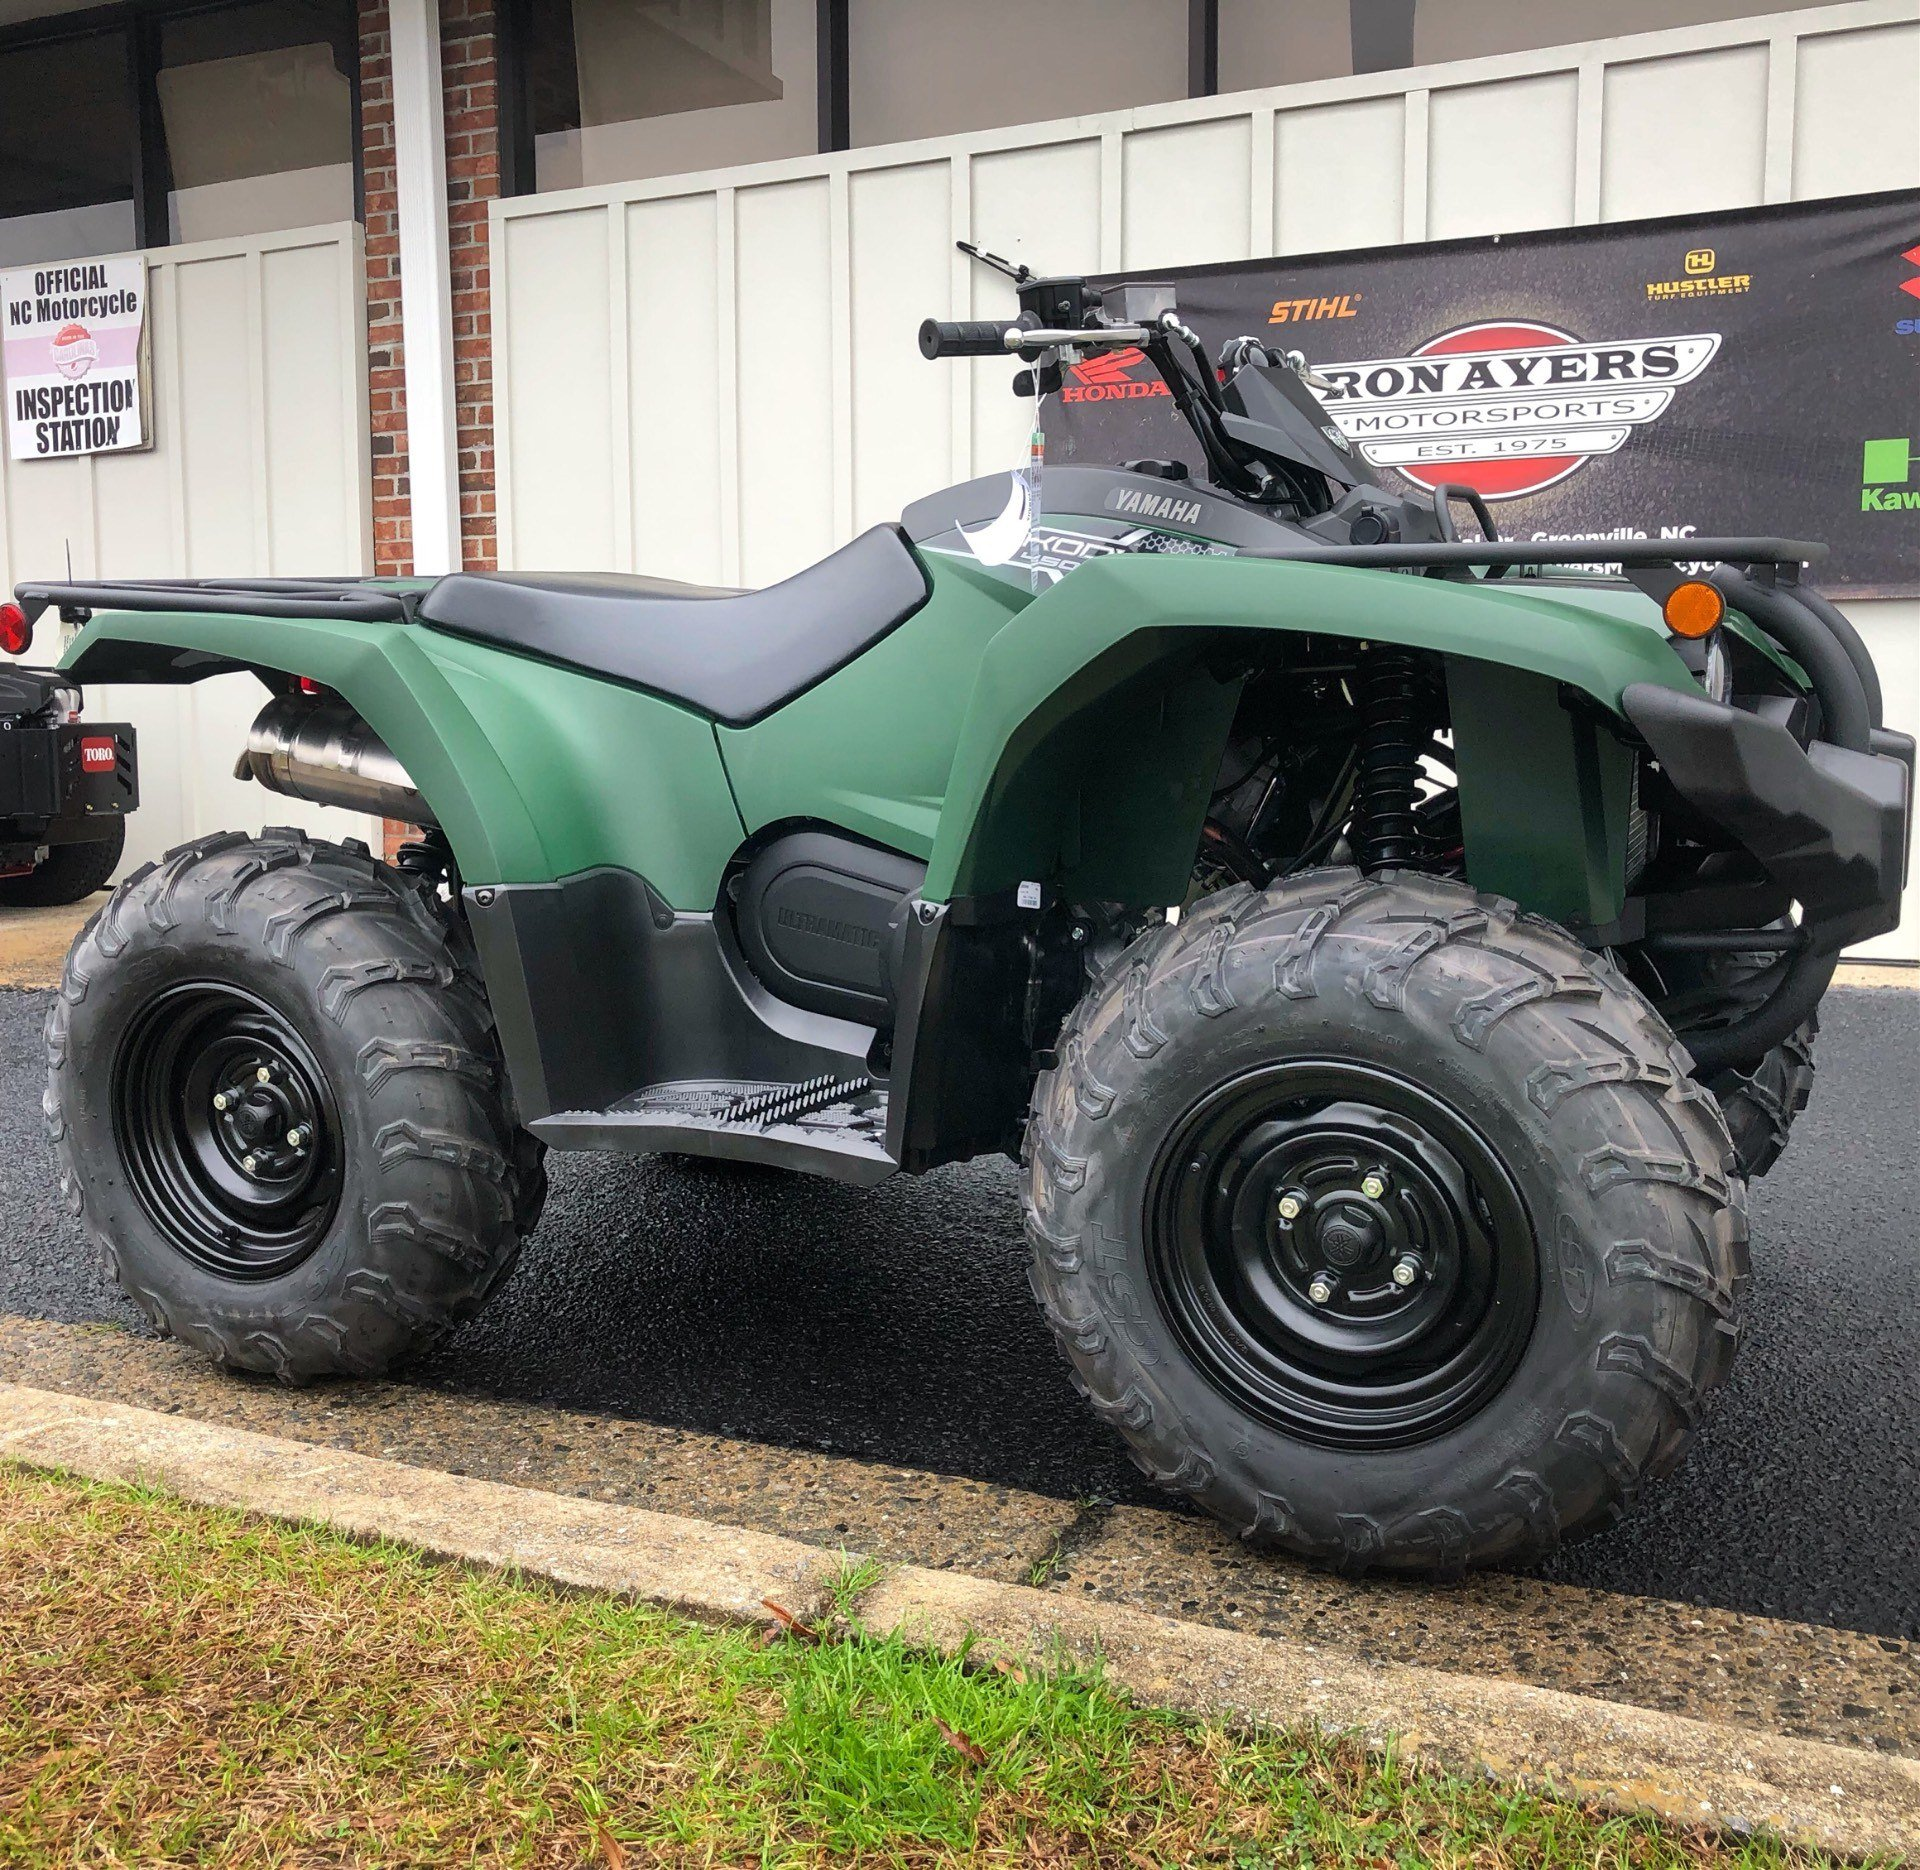 2019 Yamaha Kodiak 450 in Greenville, North Carolina - Photo 4